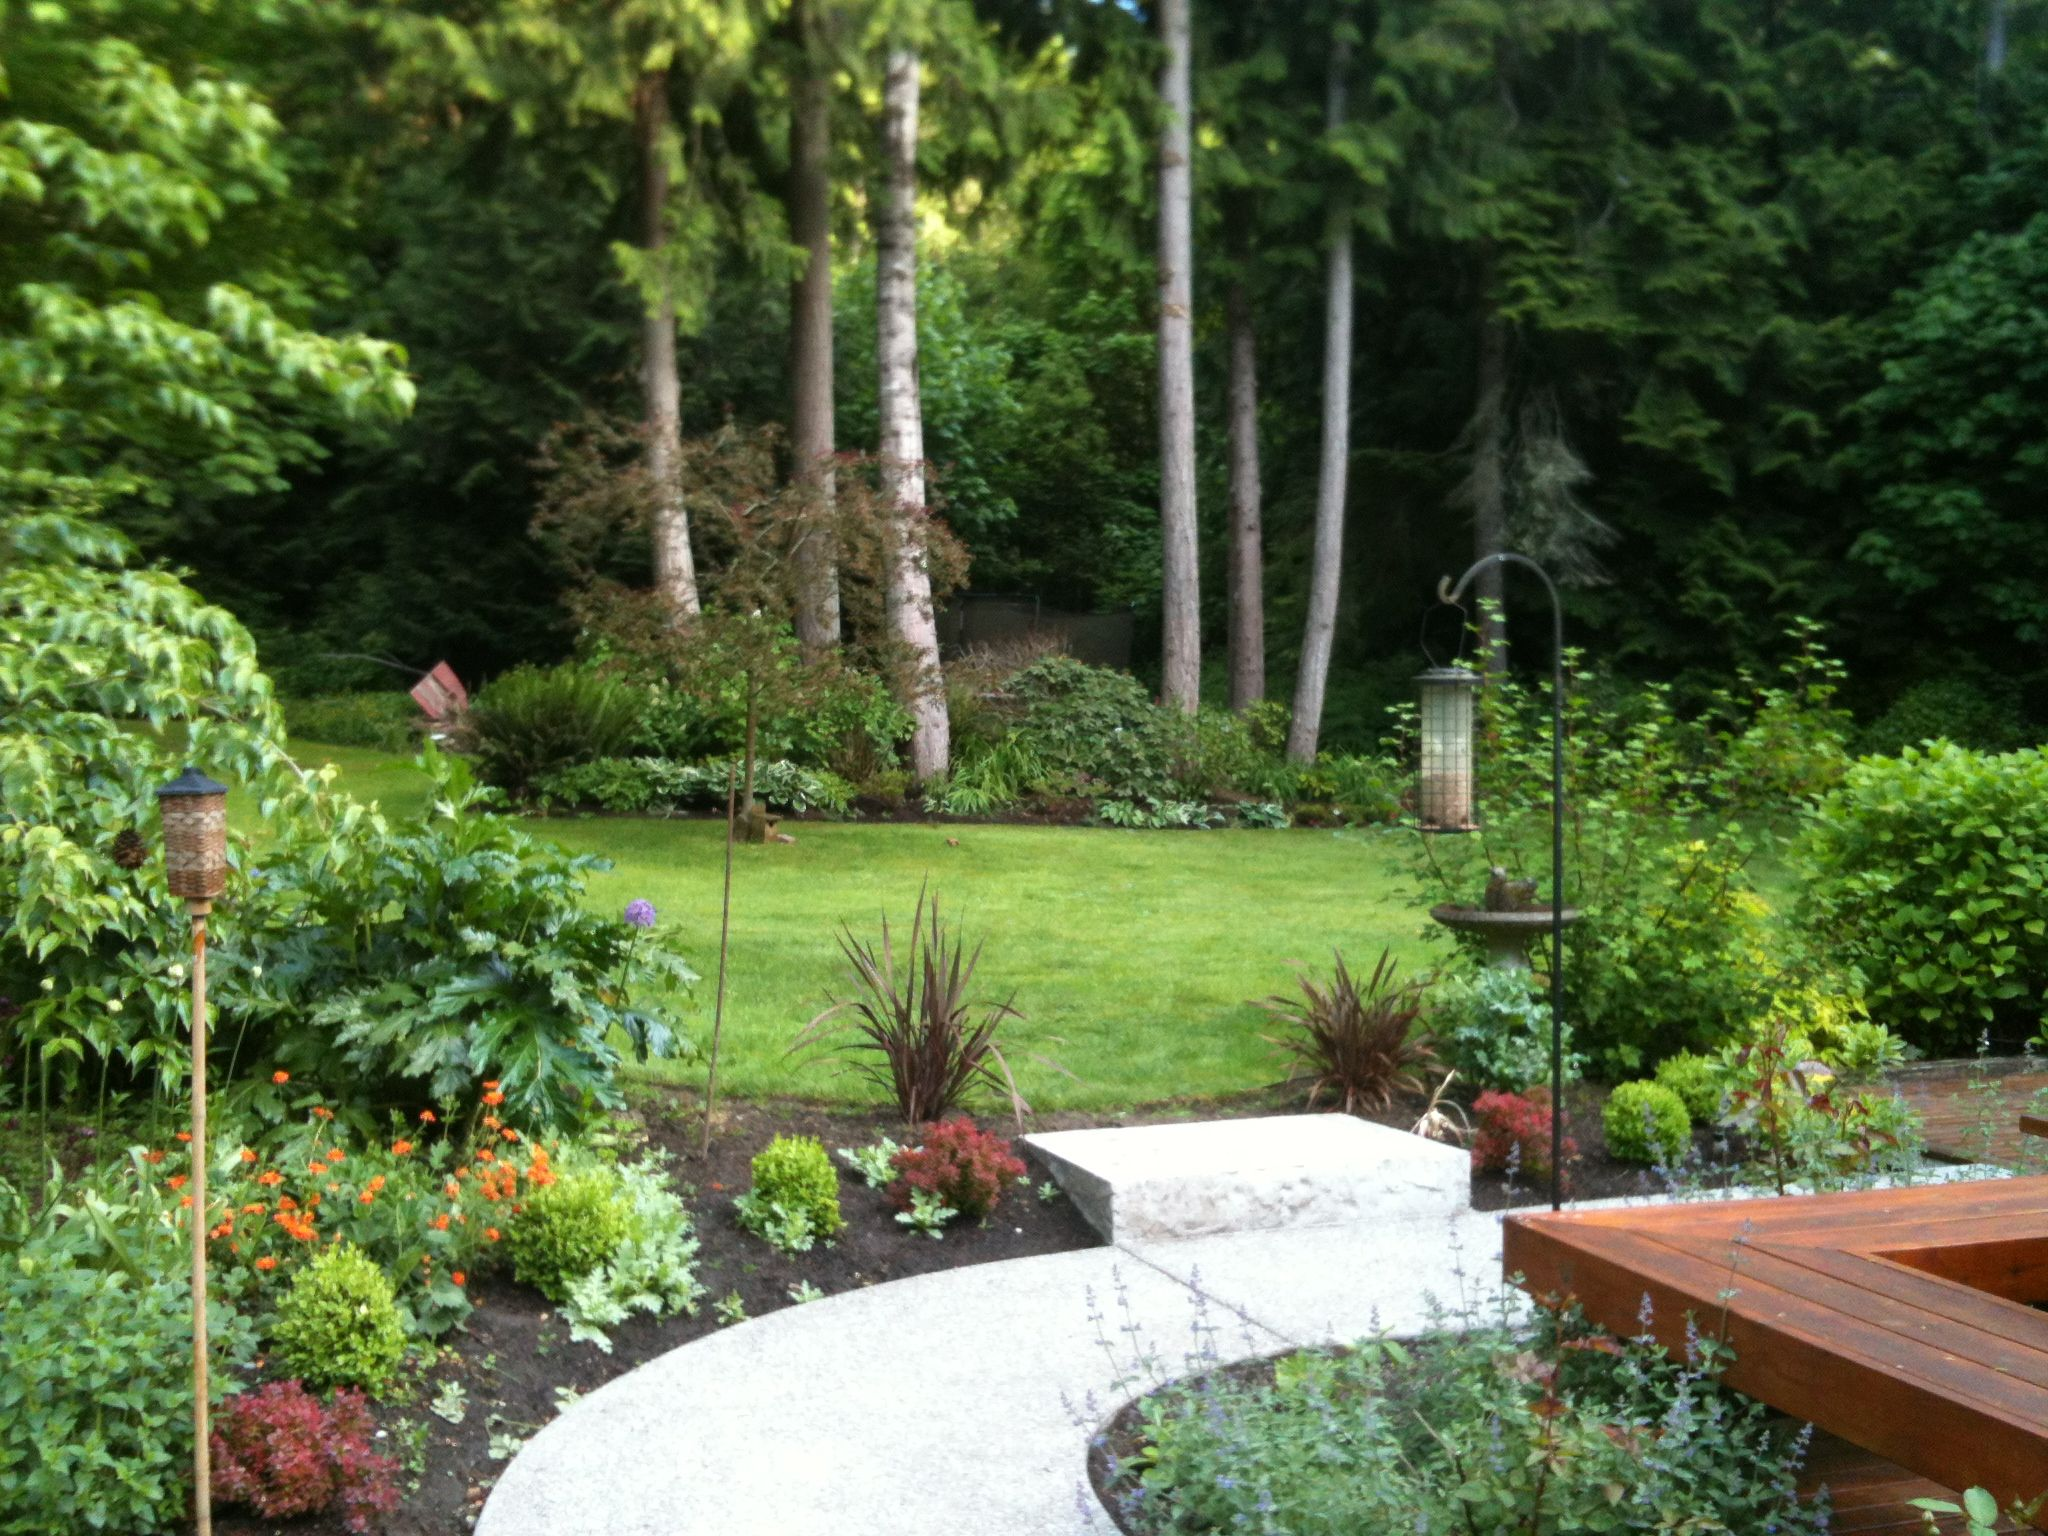 Pin By Hilary Dahl On Landscape Pacific Northwest Garden Northwest Garden Outdoor Landscaping